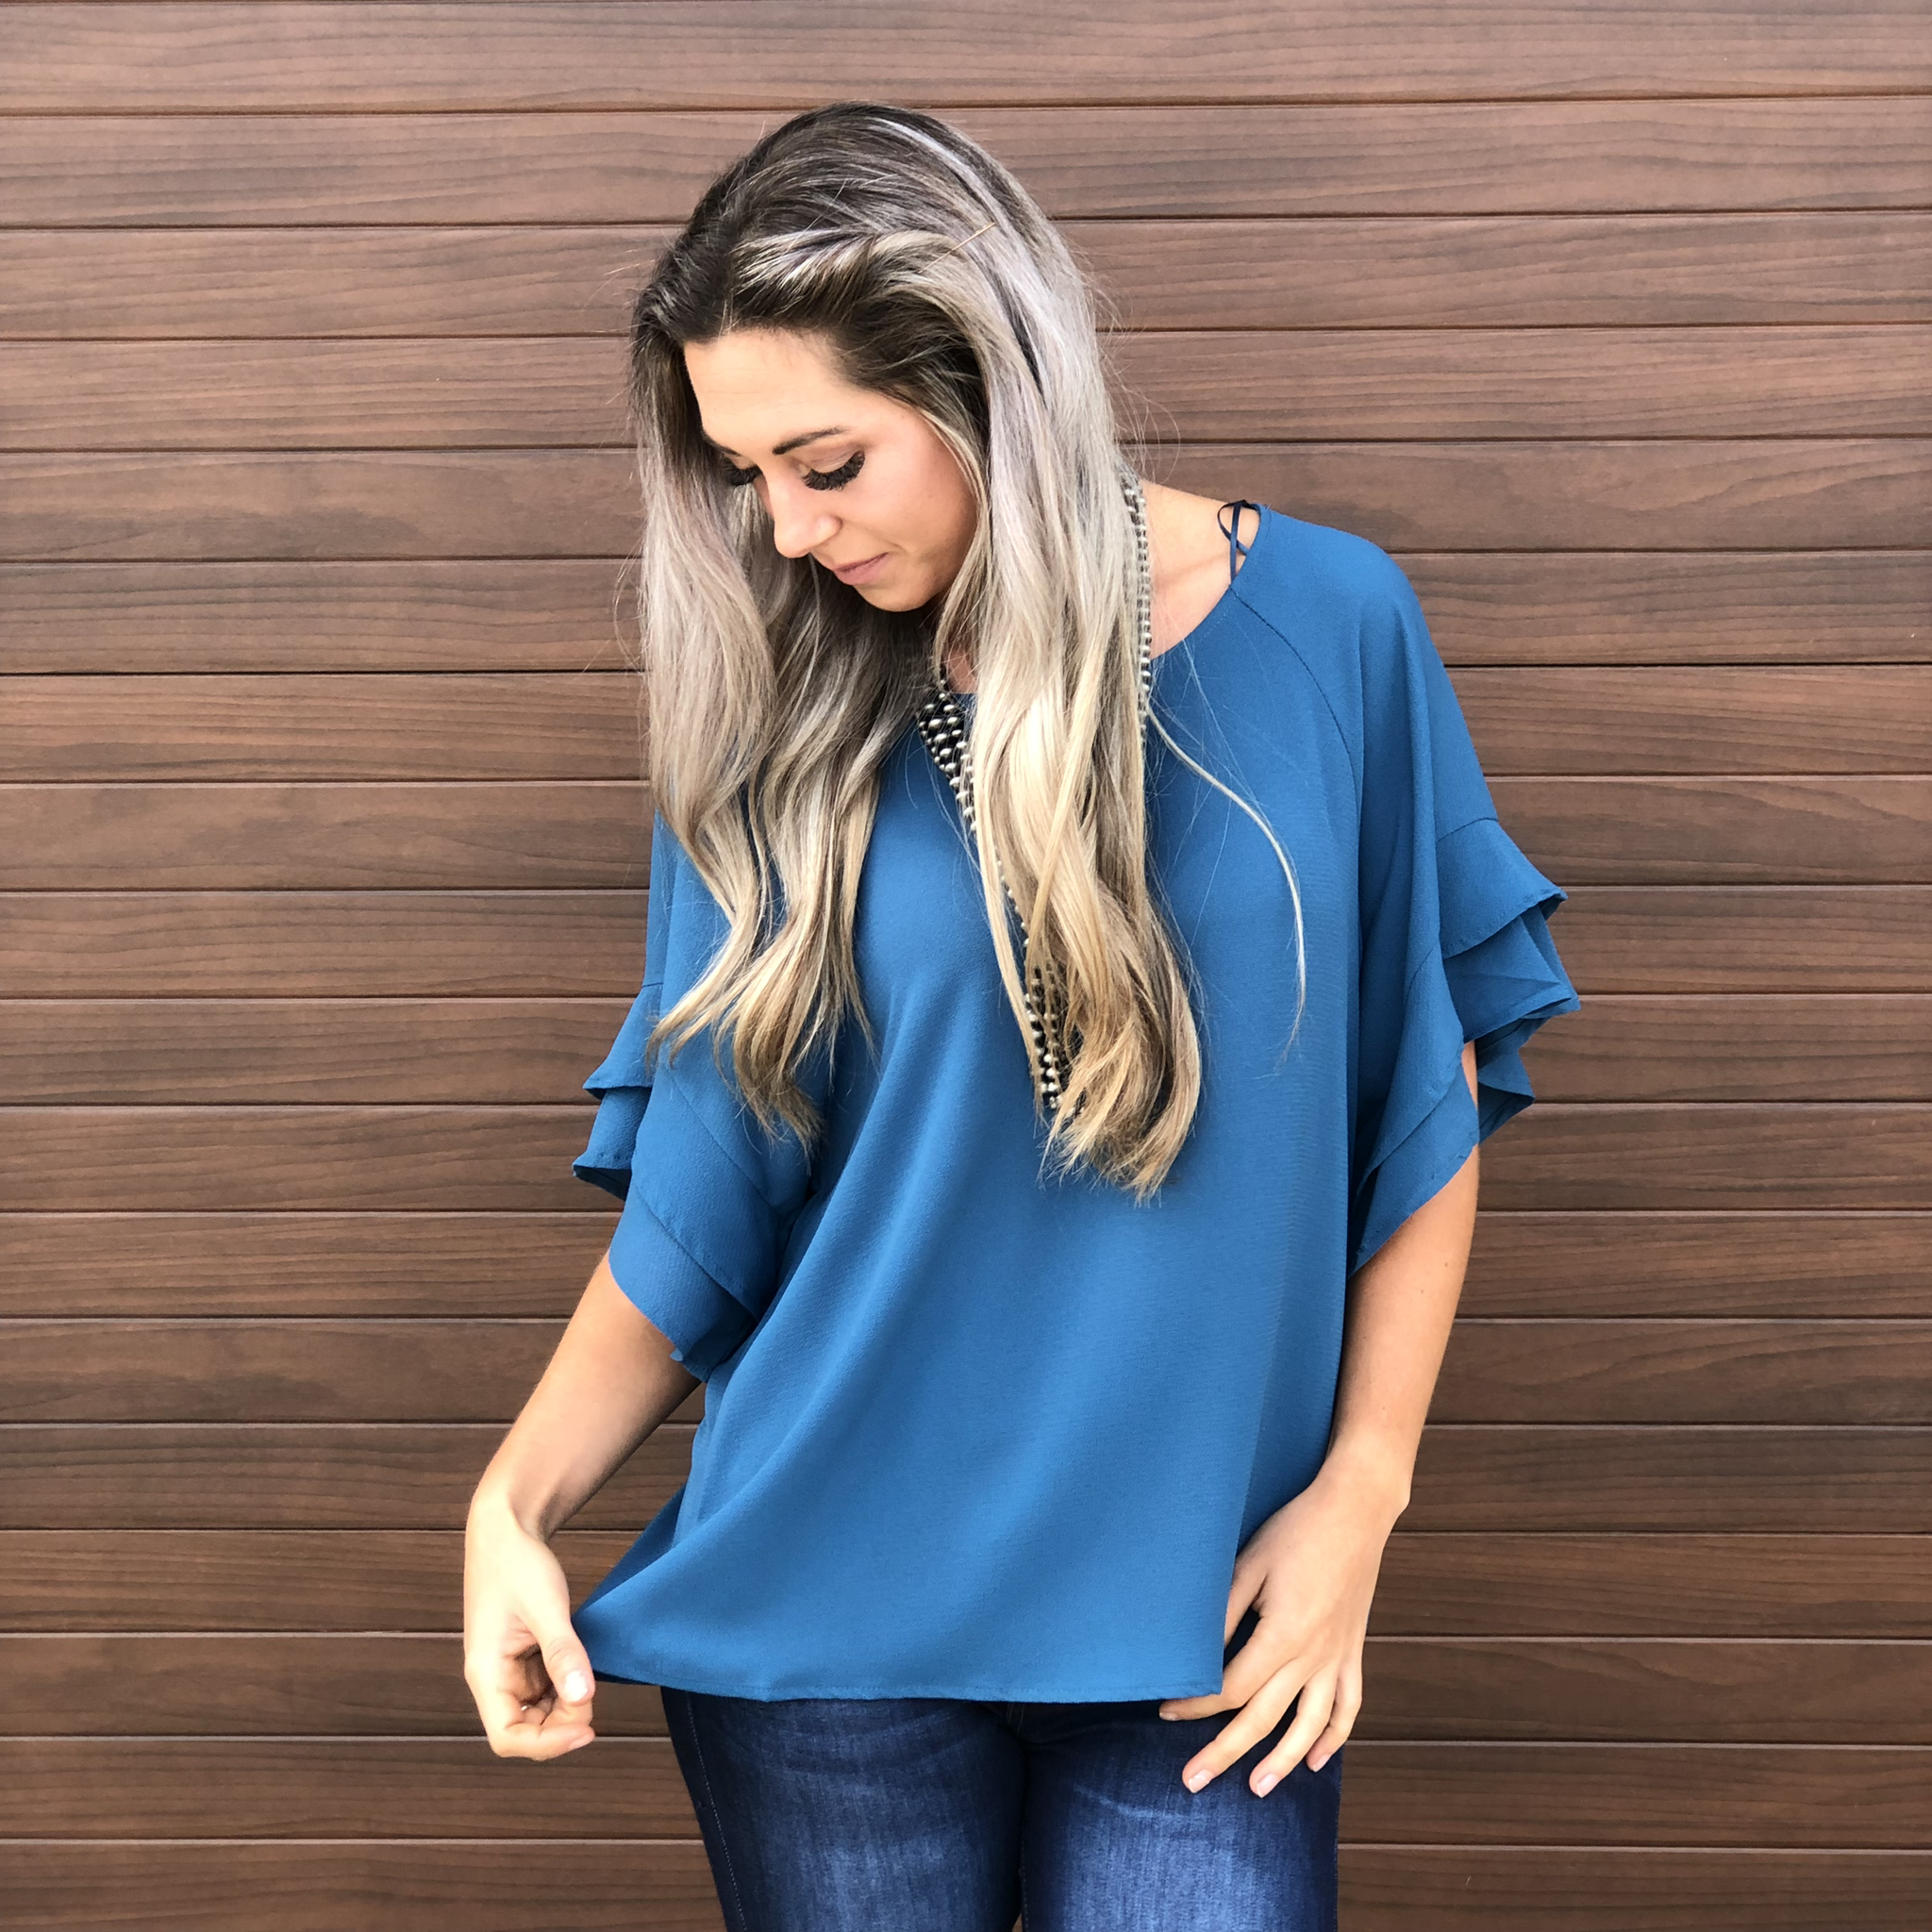 The Kelowna Shift Ruffle Top - Teal